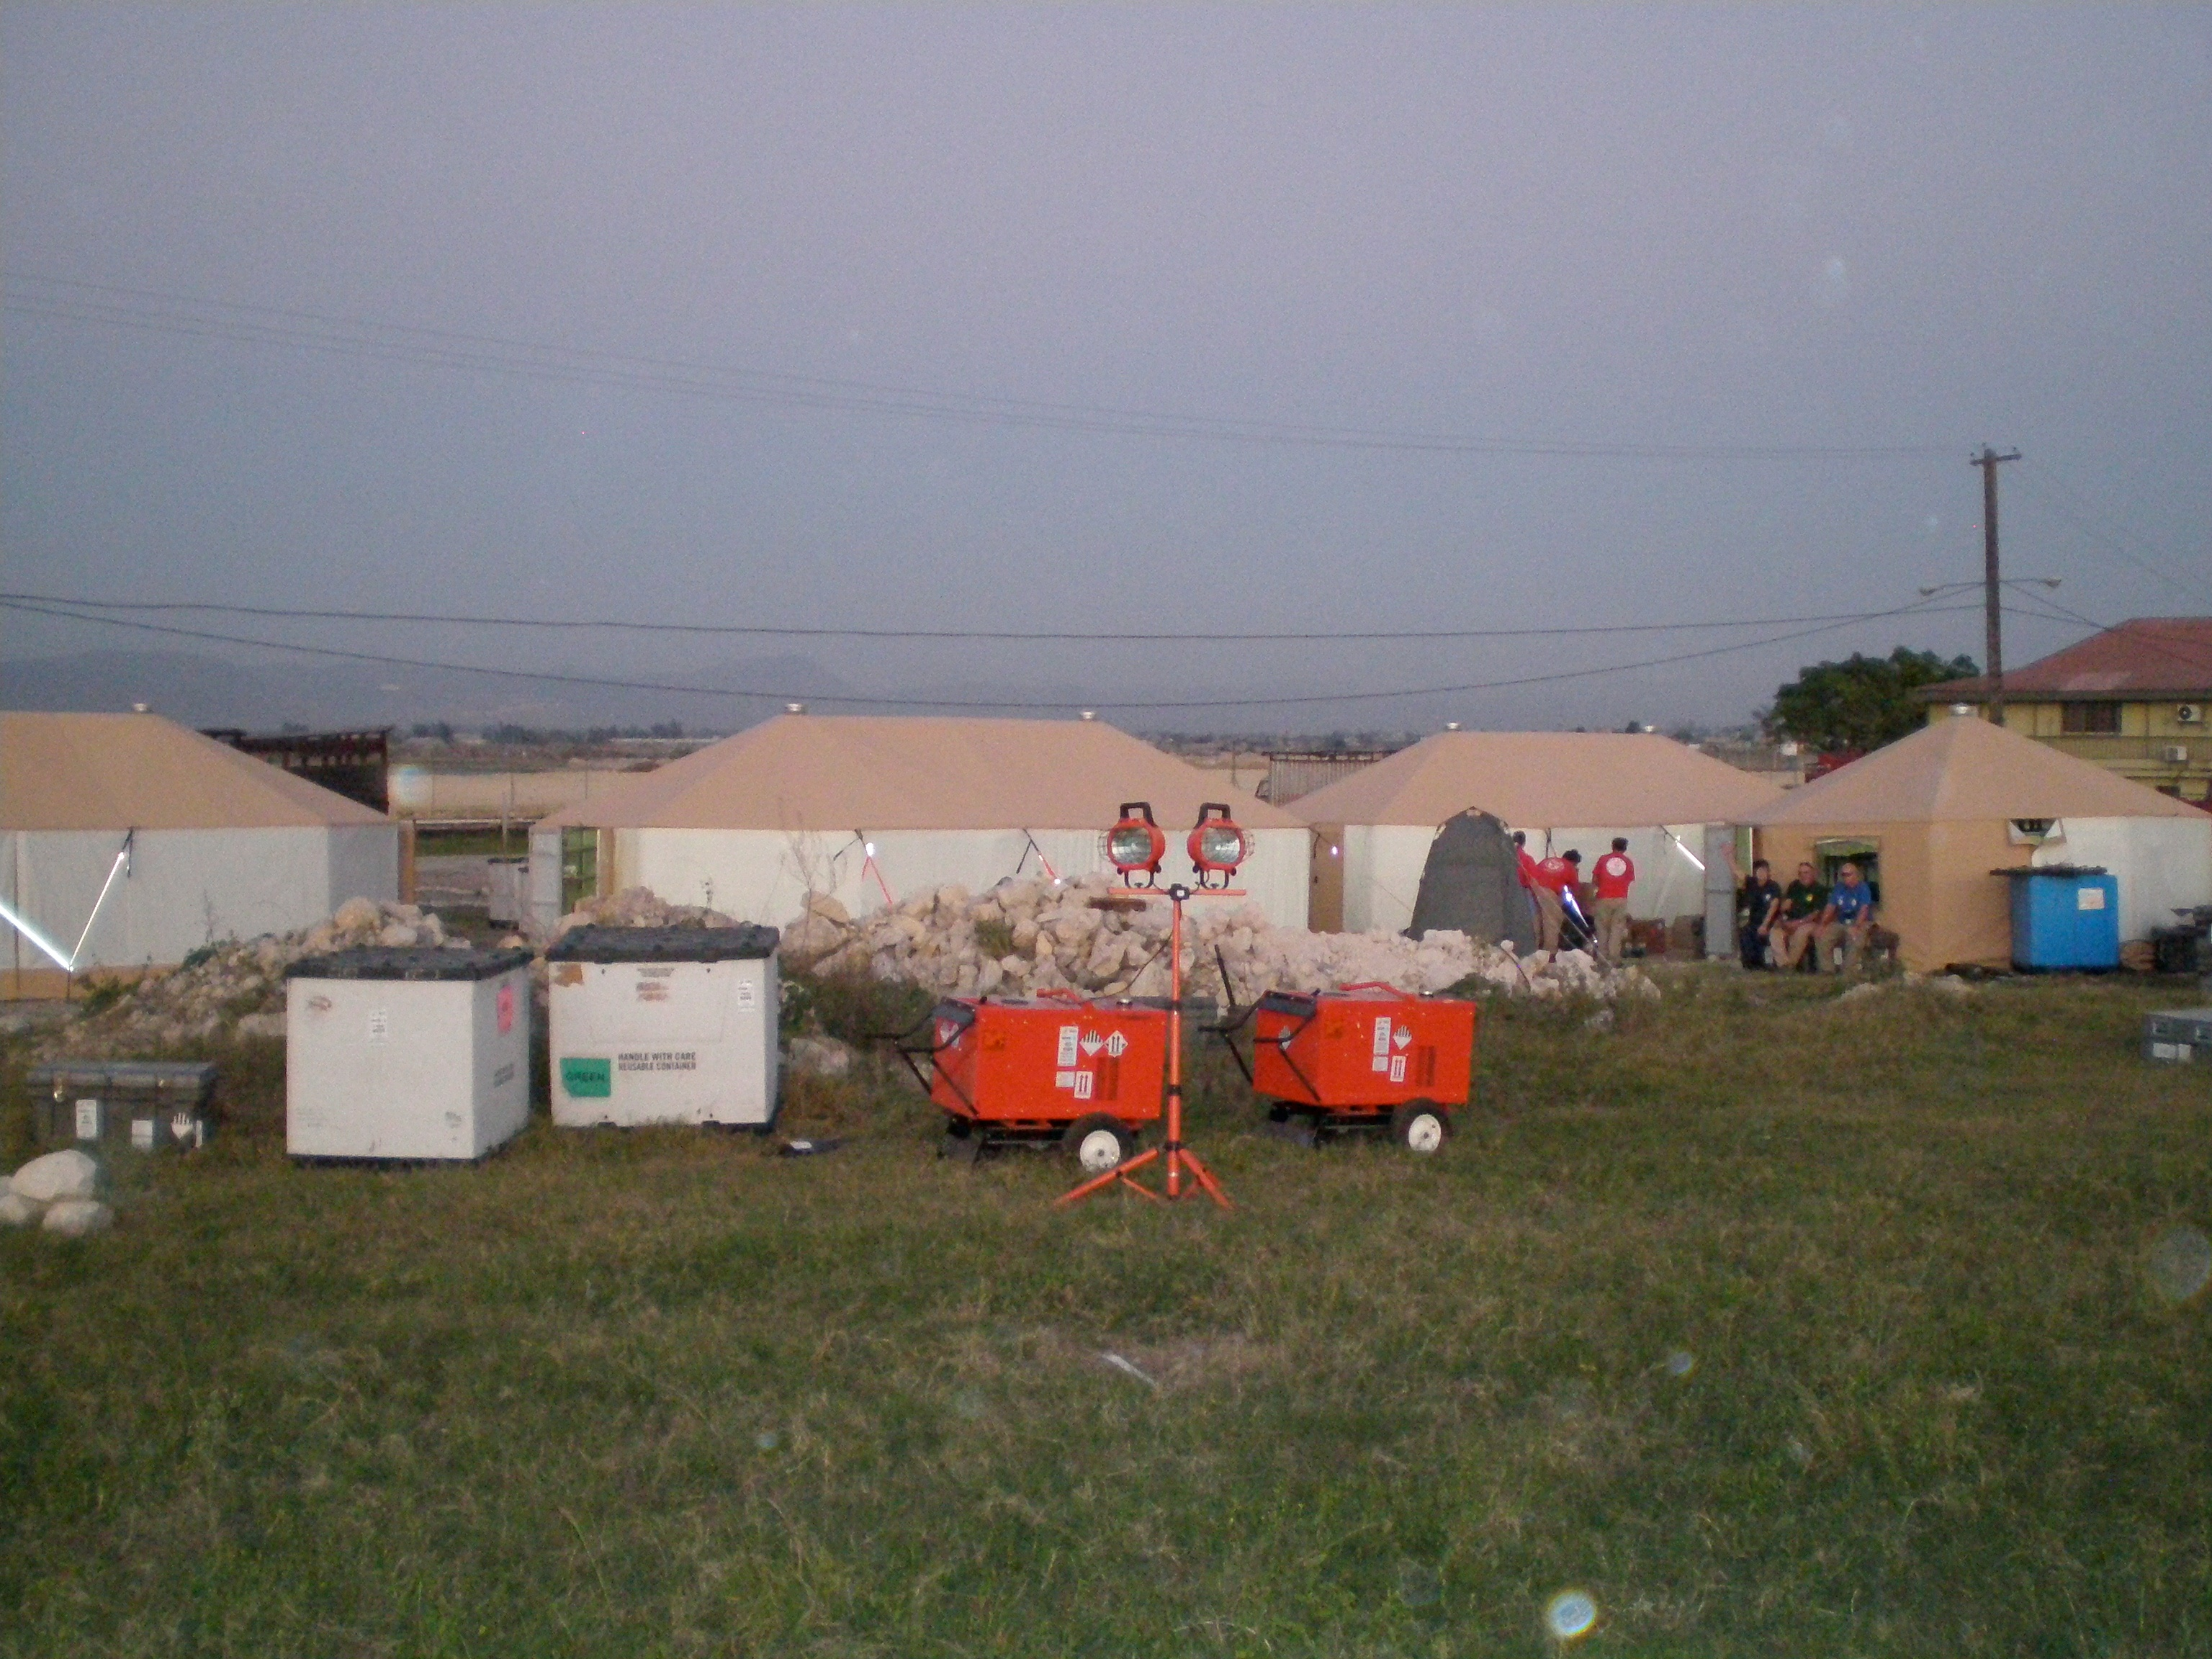 A base of operations for disaster relief during the 2010 earthquake in Haiti